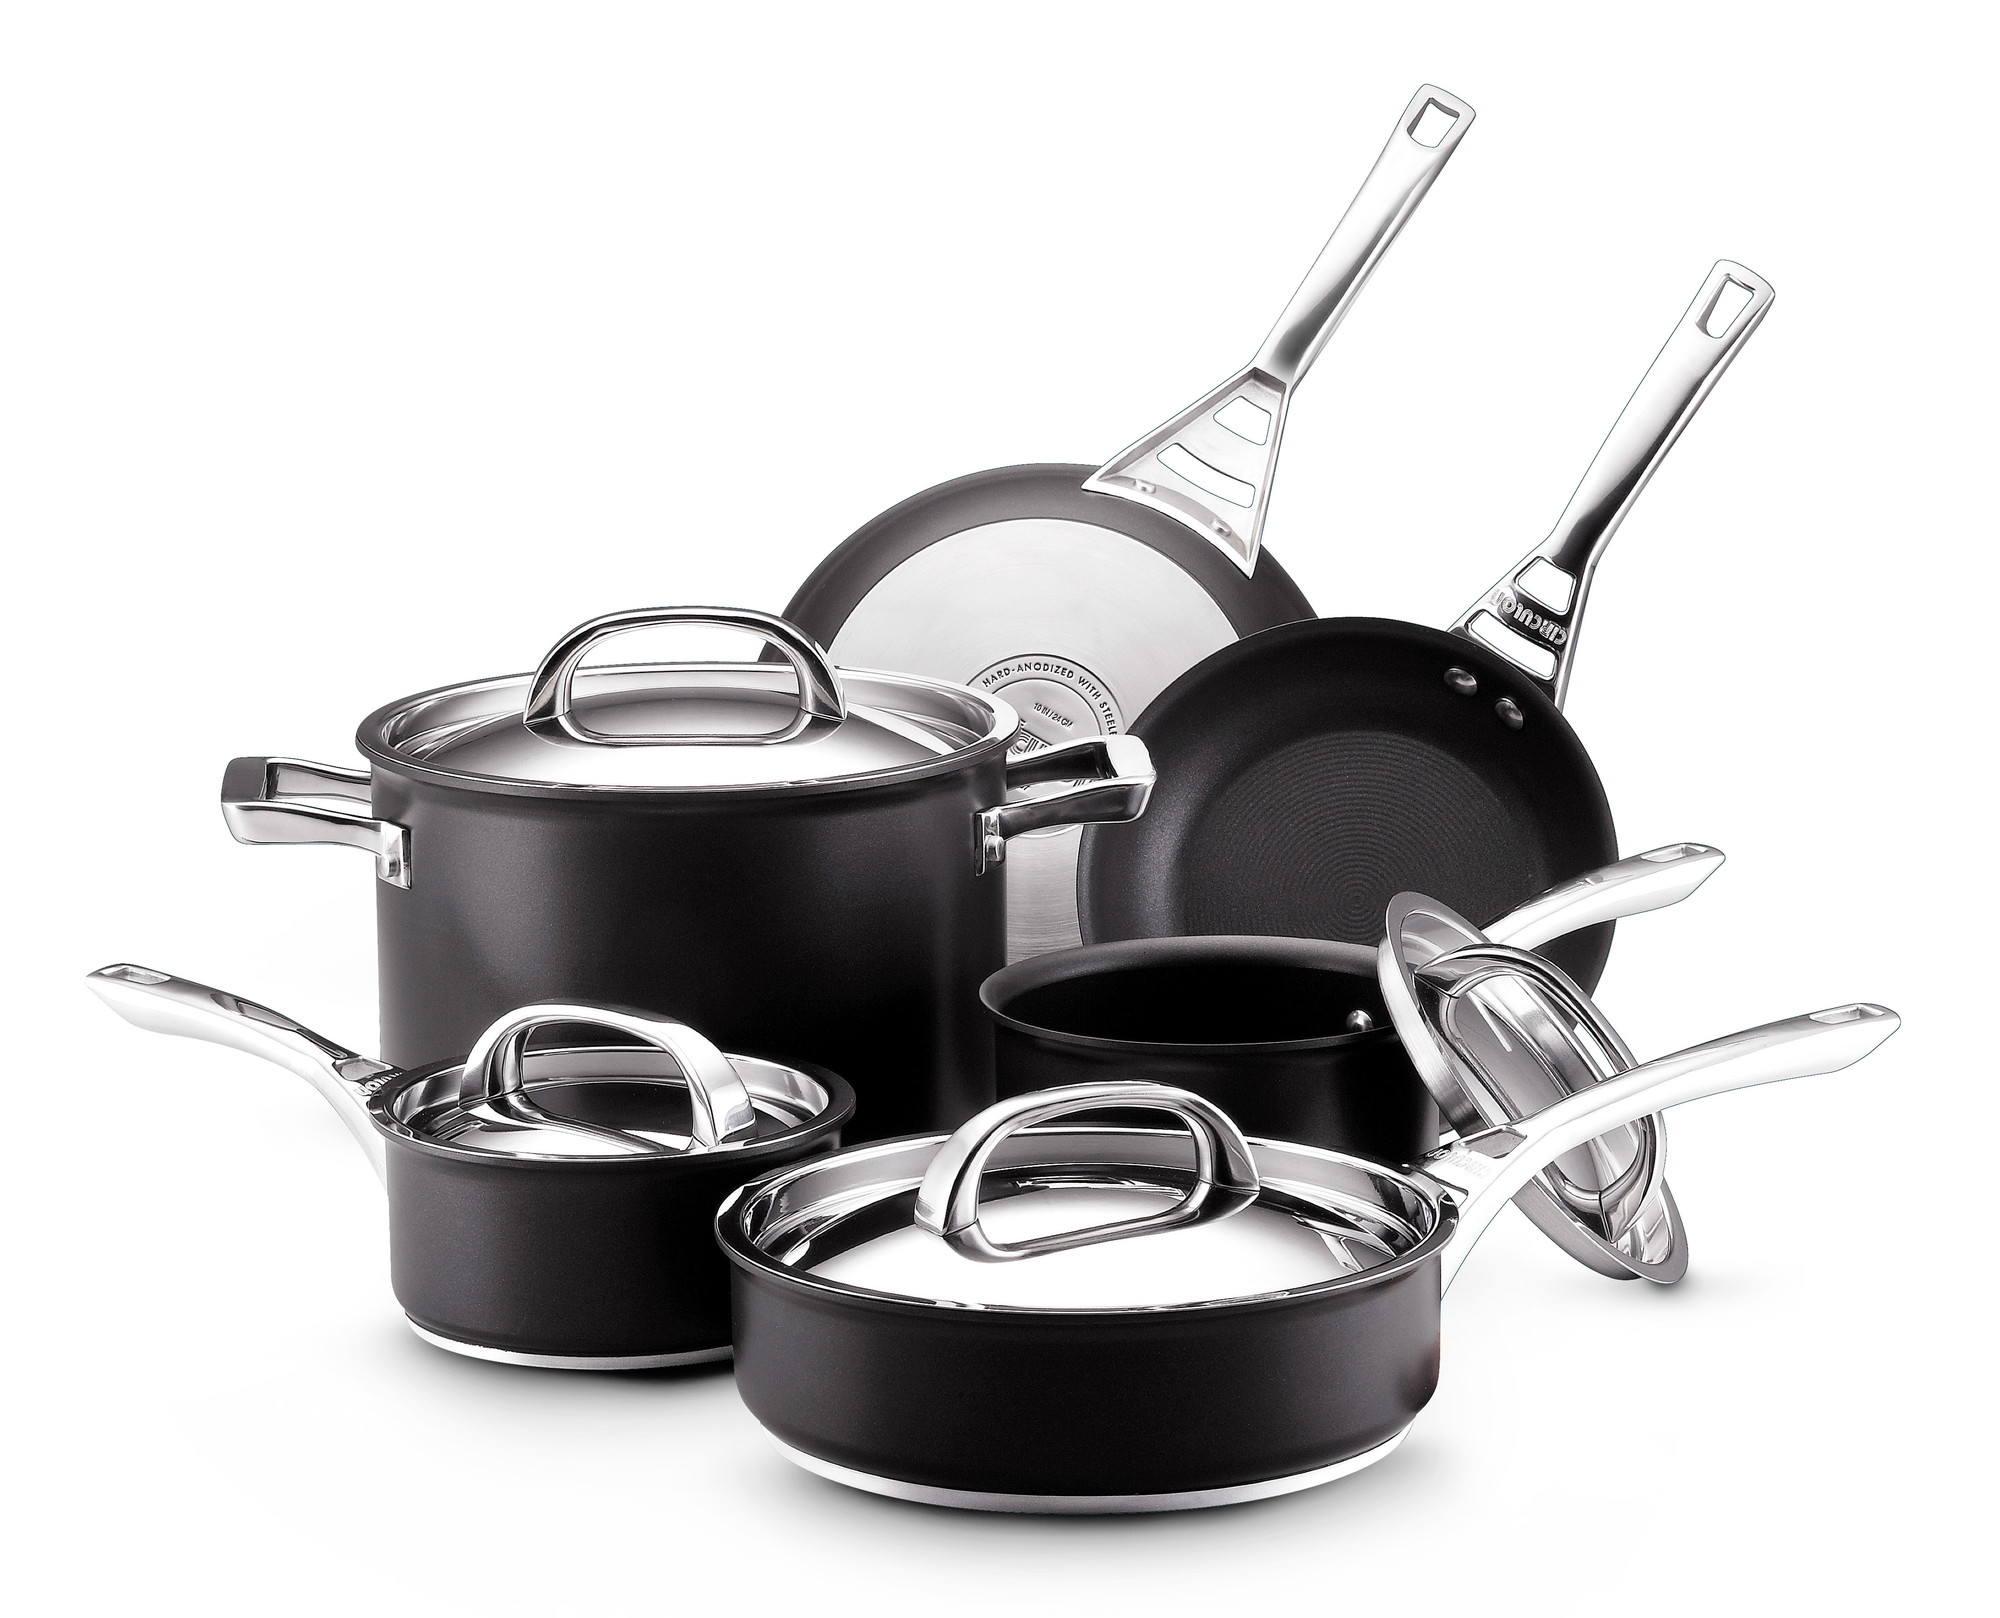 kitchen cookware sets ninja system pulse circulon infinite review hard anodized nonstick set